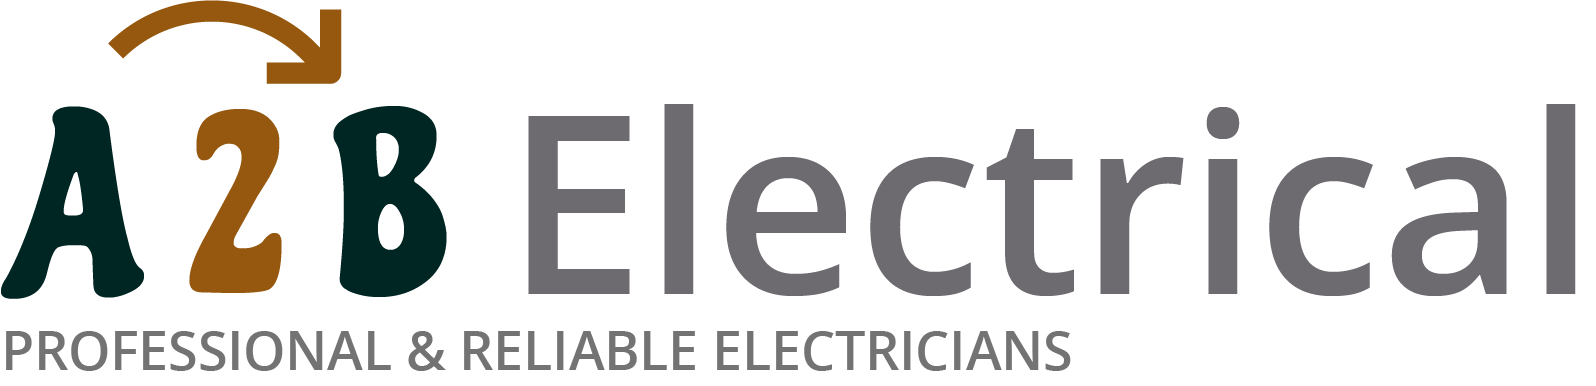 If you have electrical wiring problems in Hounslow, we can provide an electrician to have a look for you.